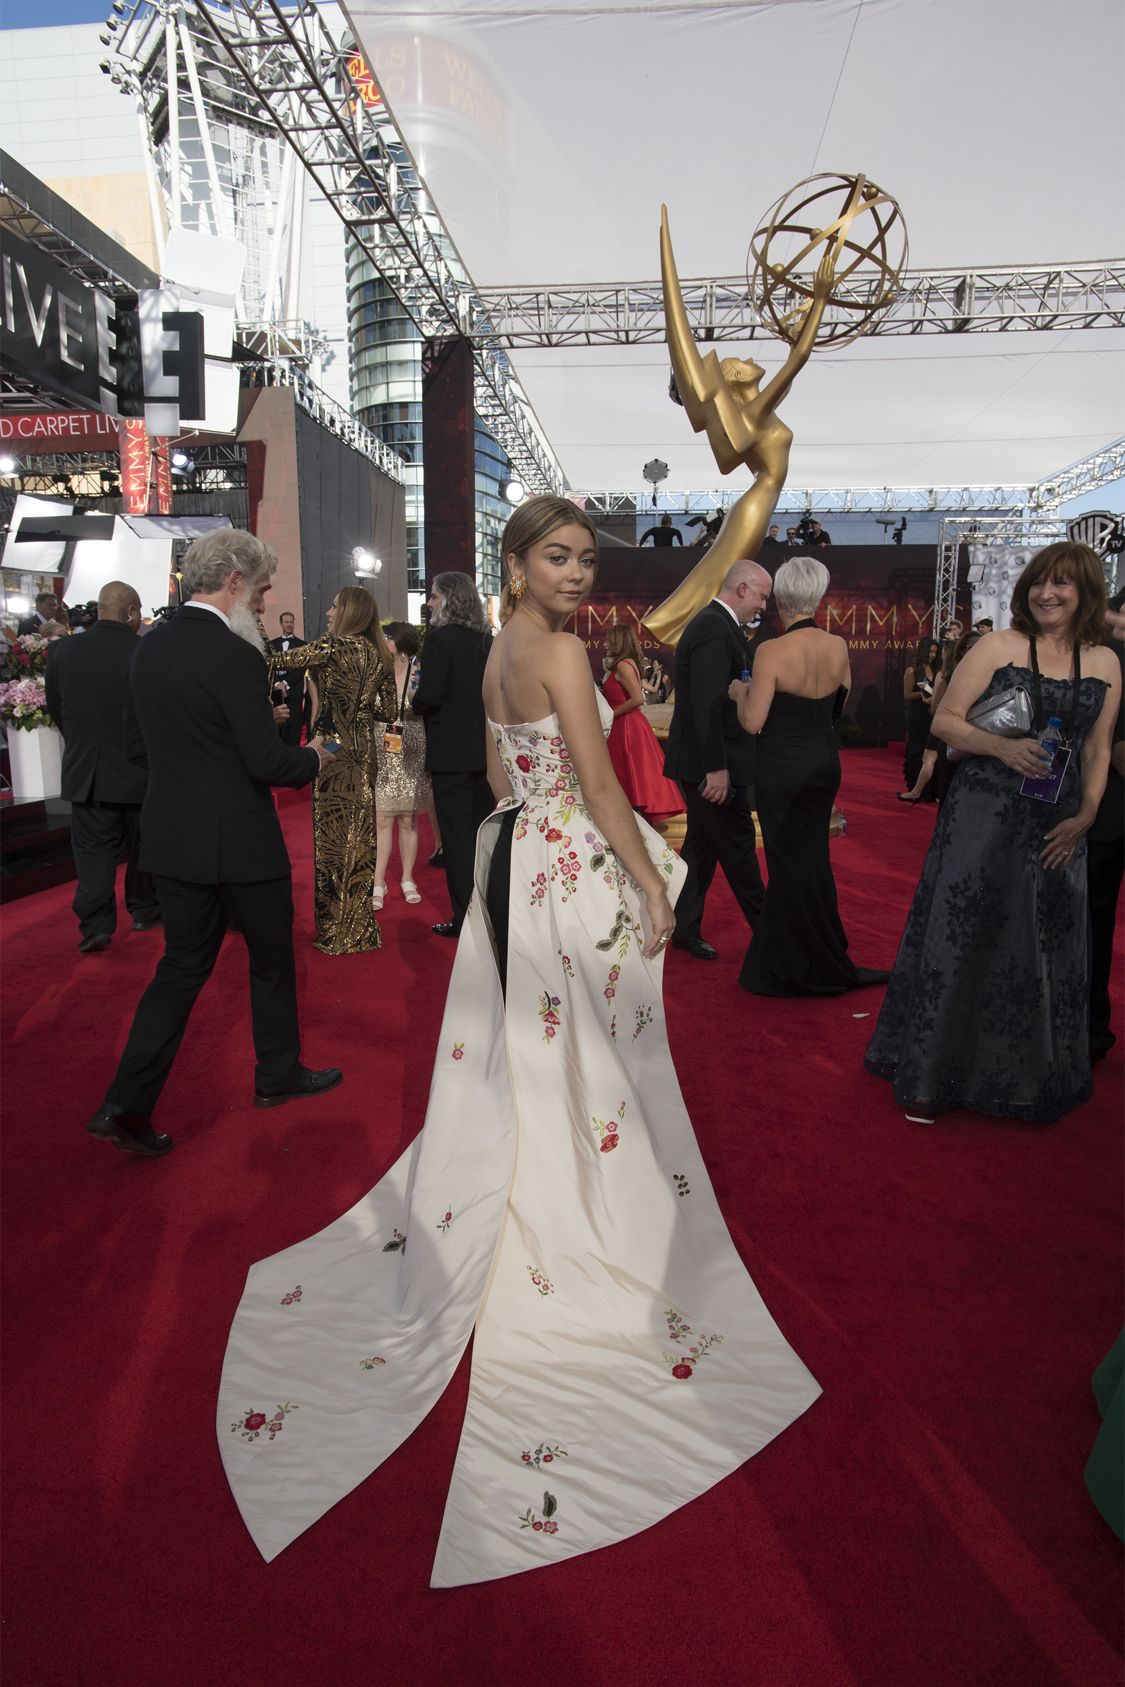 """THE 68TH EMMY(r) AWARDS - """"The 68th Emmy Awards"""" broadcasts live from The Microsoft Theater in Los Angeles, Sunday, September 18 (7:00-11:00 p.m. EDT/4:00-8:00 p.m. PDT), on ABC and is hosted by Jimmy Kimmel. (ABC/Image Group LA) SARAH HYLAND"""